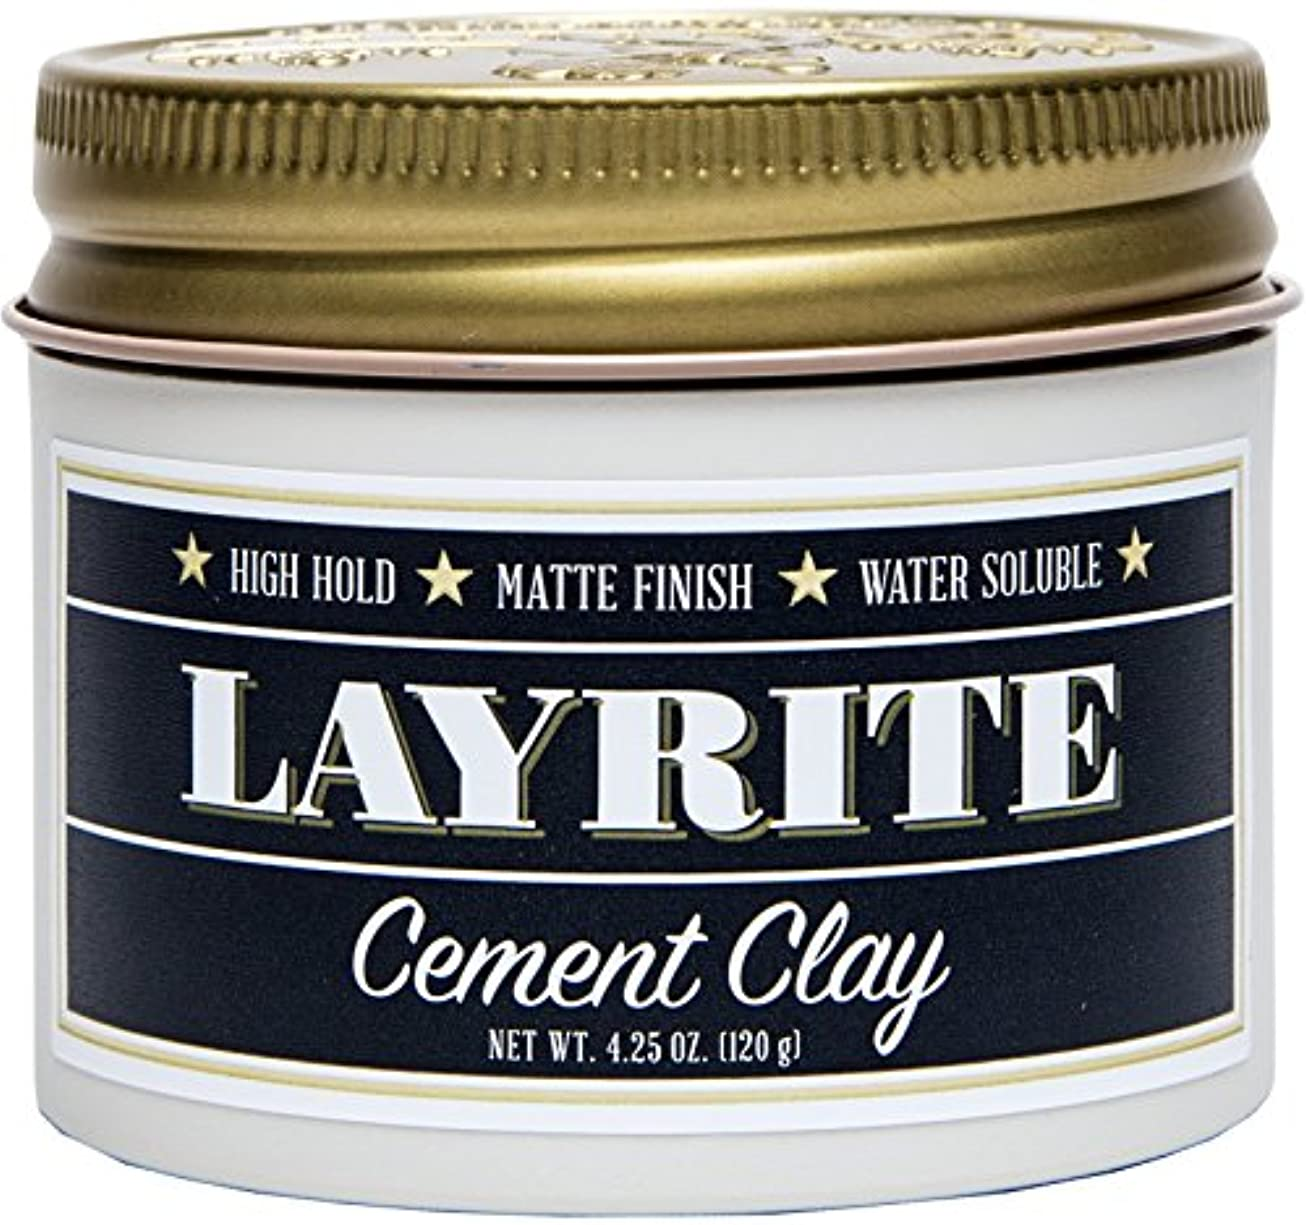 ローマ人強調する前方へLayrite Cement Clay (High Hold, Matte Finish, Water Soluble) 120g/4.25oz並行輸入品